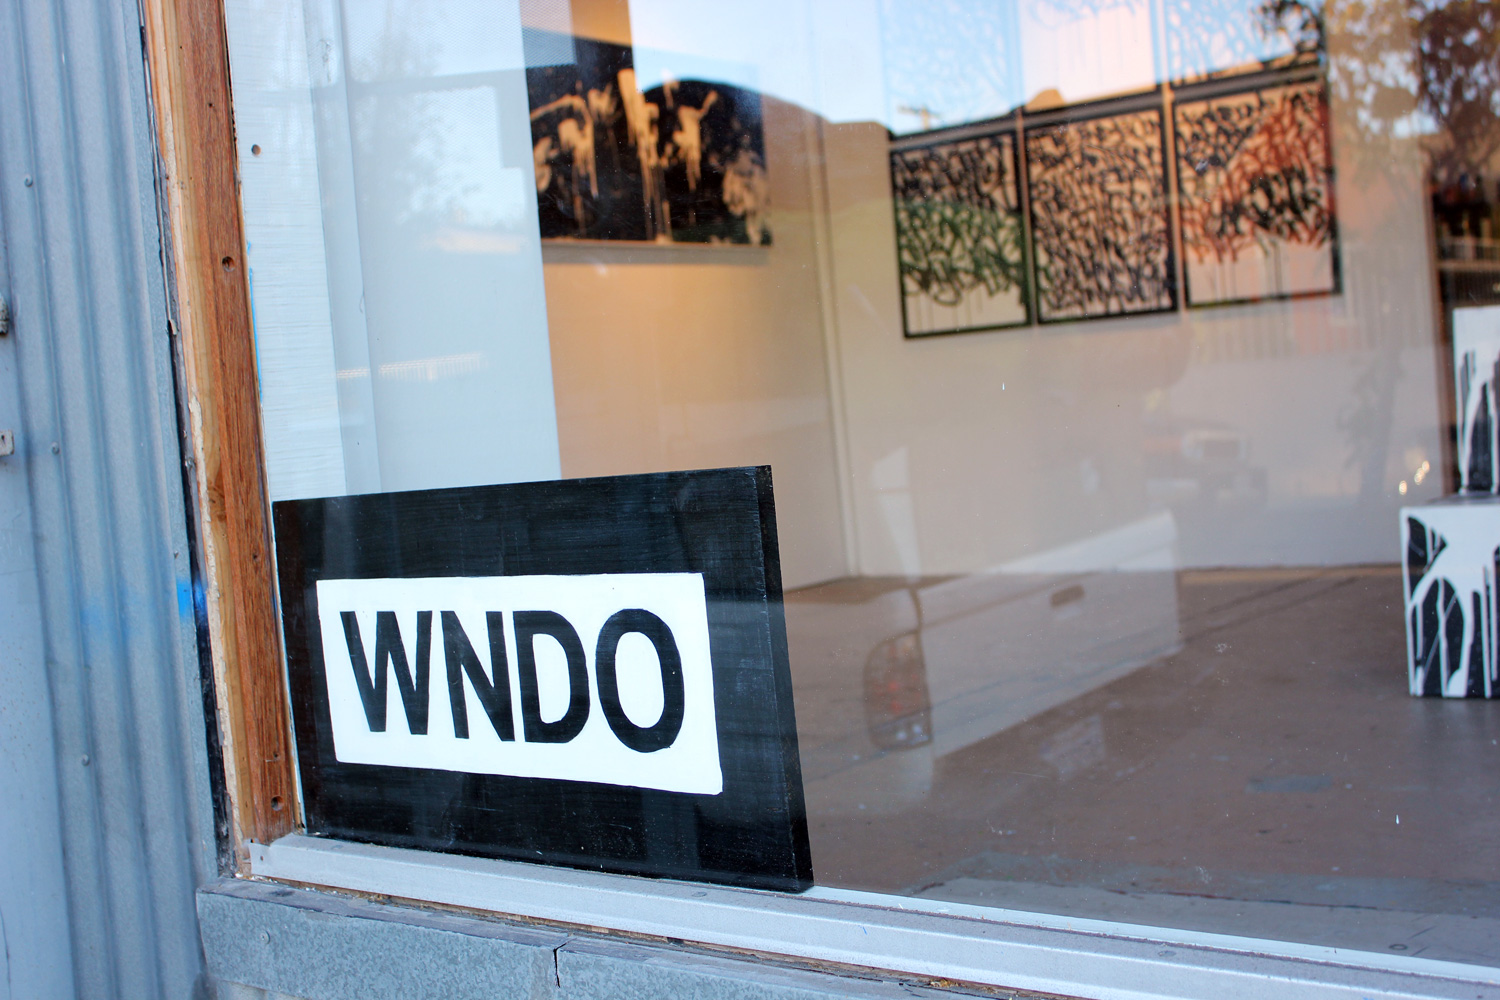 Taking over the former studio space of Doug Edge, partners Bisco Smith and Dfalt debut WNDO, a multi-purpose creative space, in collaboration with Jim Budman Studio.